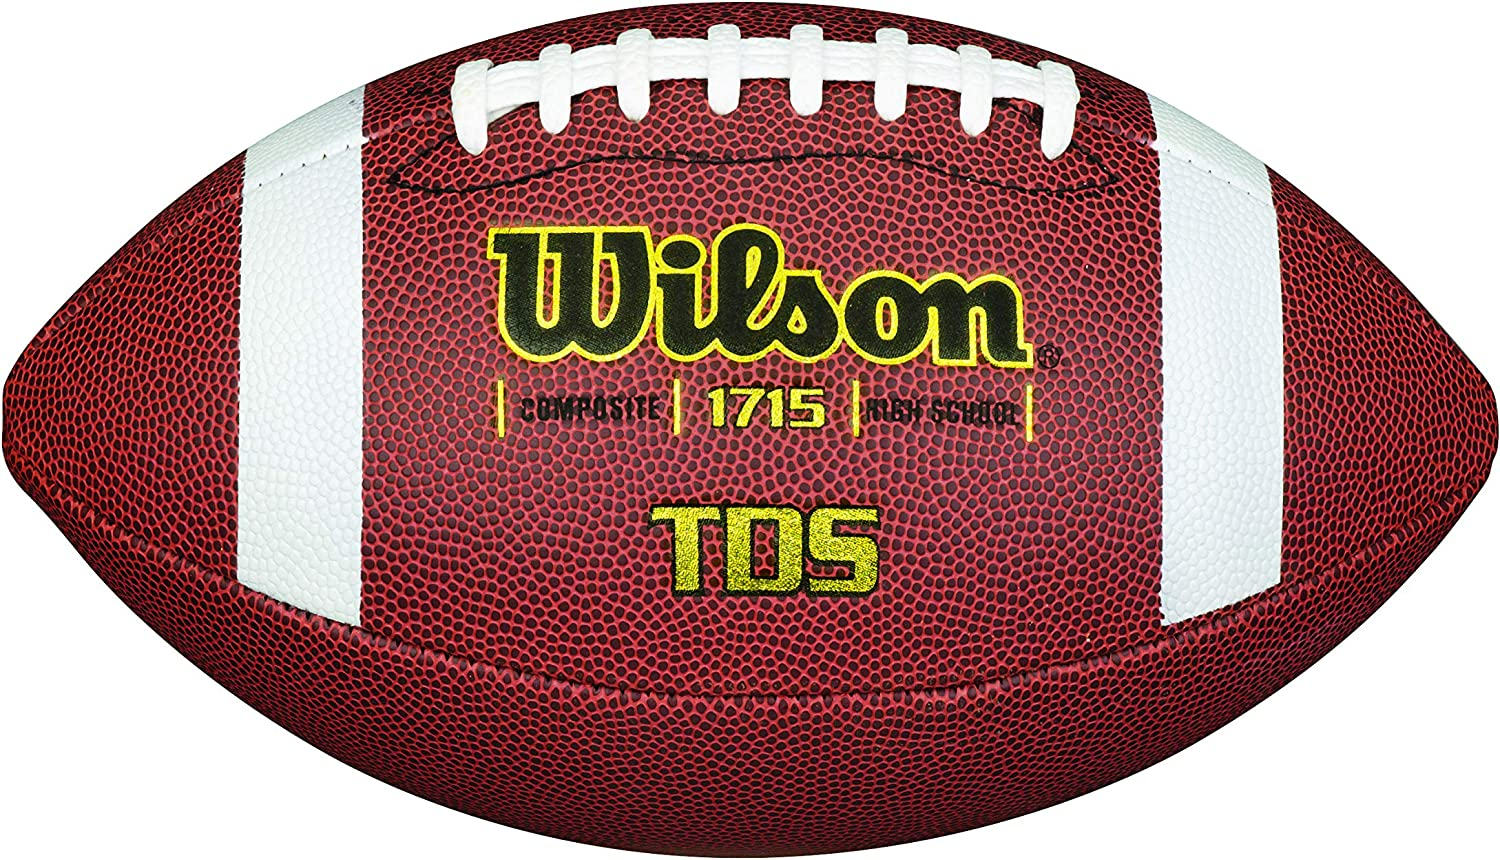 Wilson TDS Composite Football - Official : Official Footballs : Sports & Outdoors